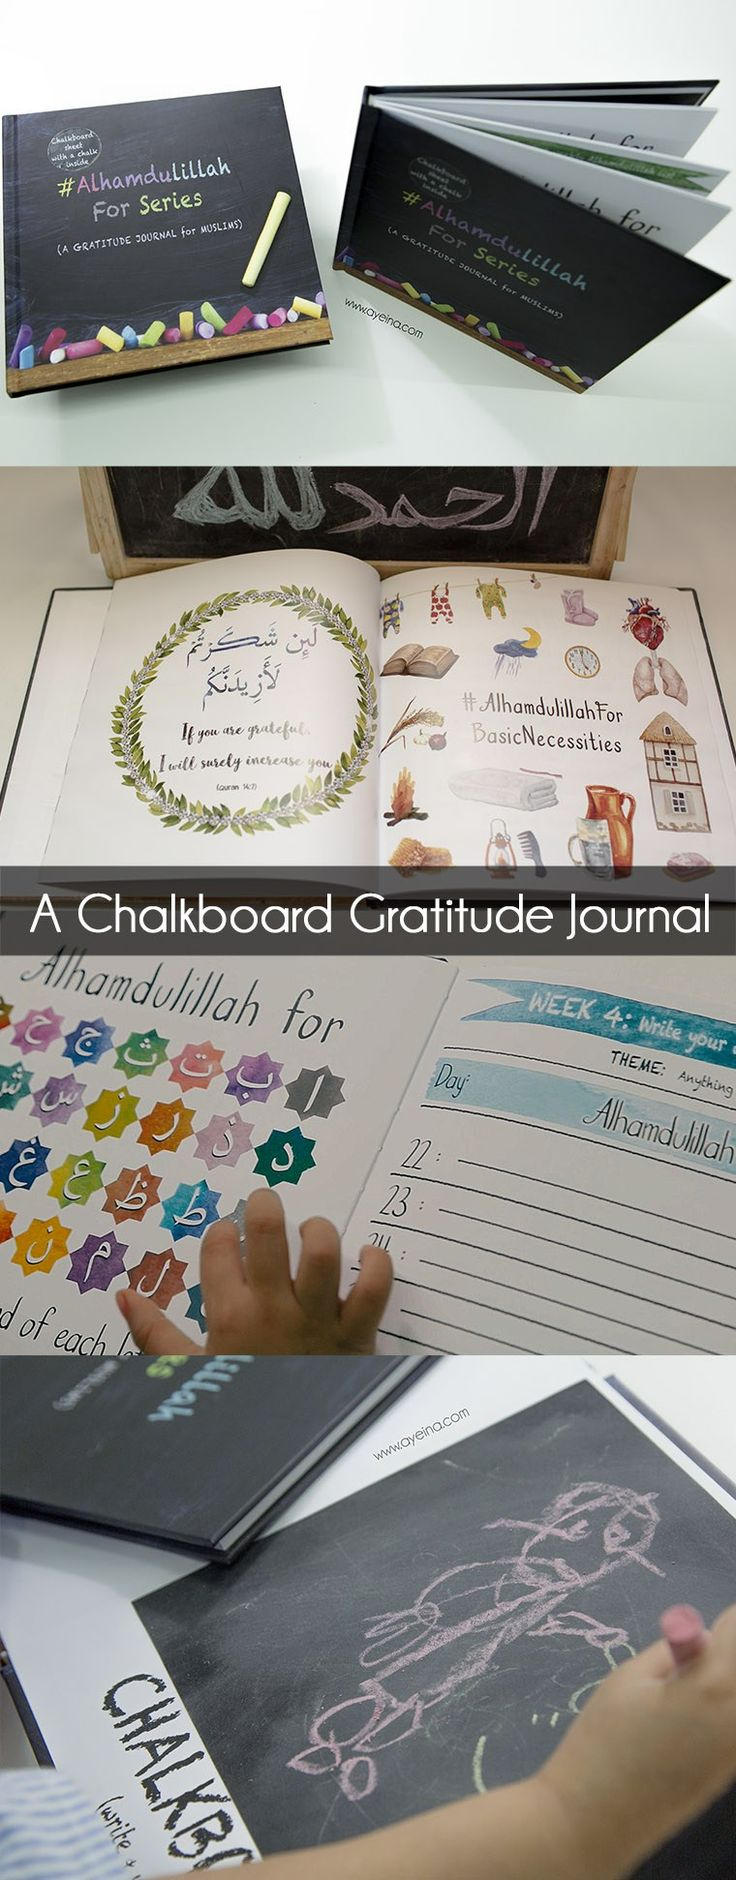 write and wipe chalkboard gratitude journal for Muslims - islamic customizable book for adults and kids alike - #AlhamdulillahForSeries